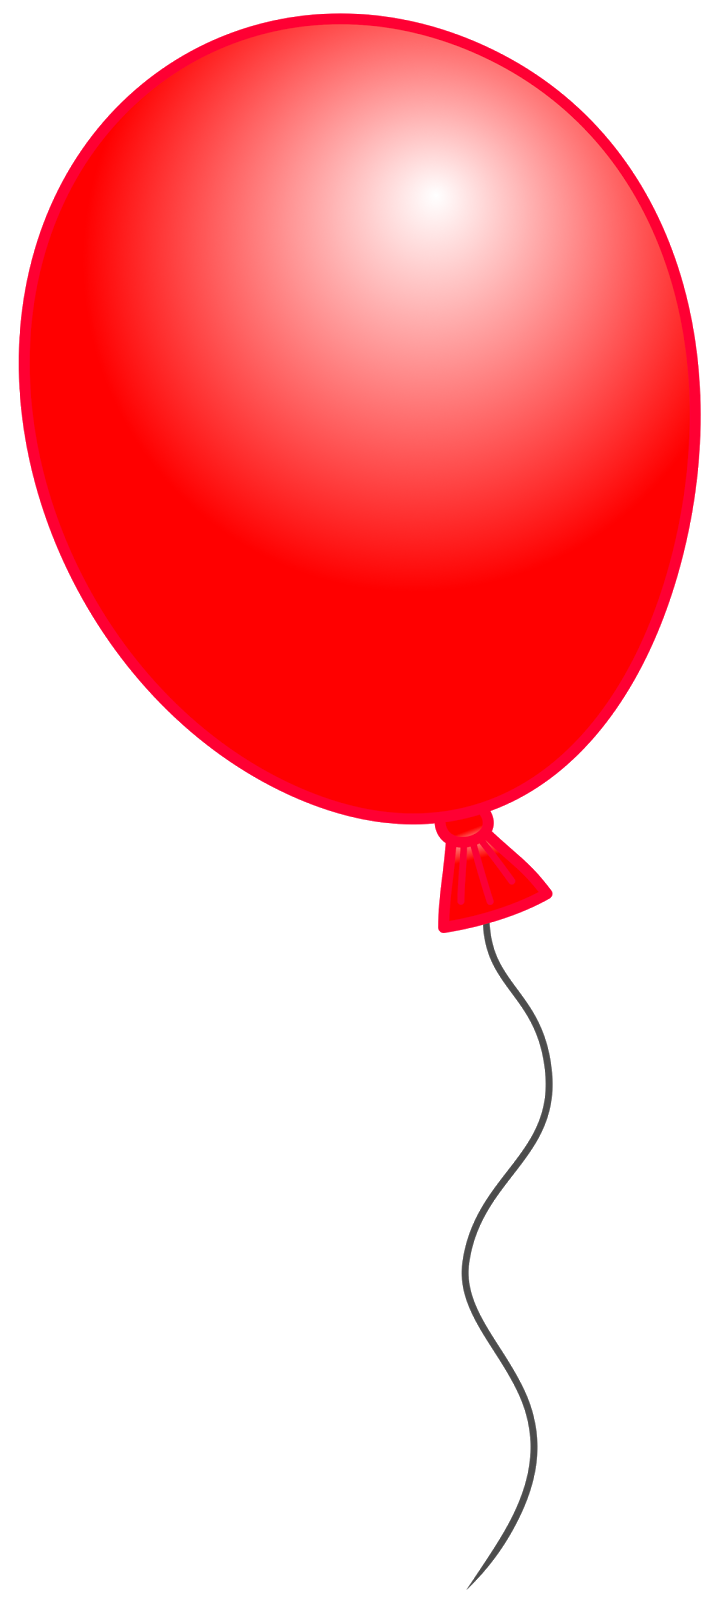 Images of Balloon | 724x1600